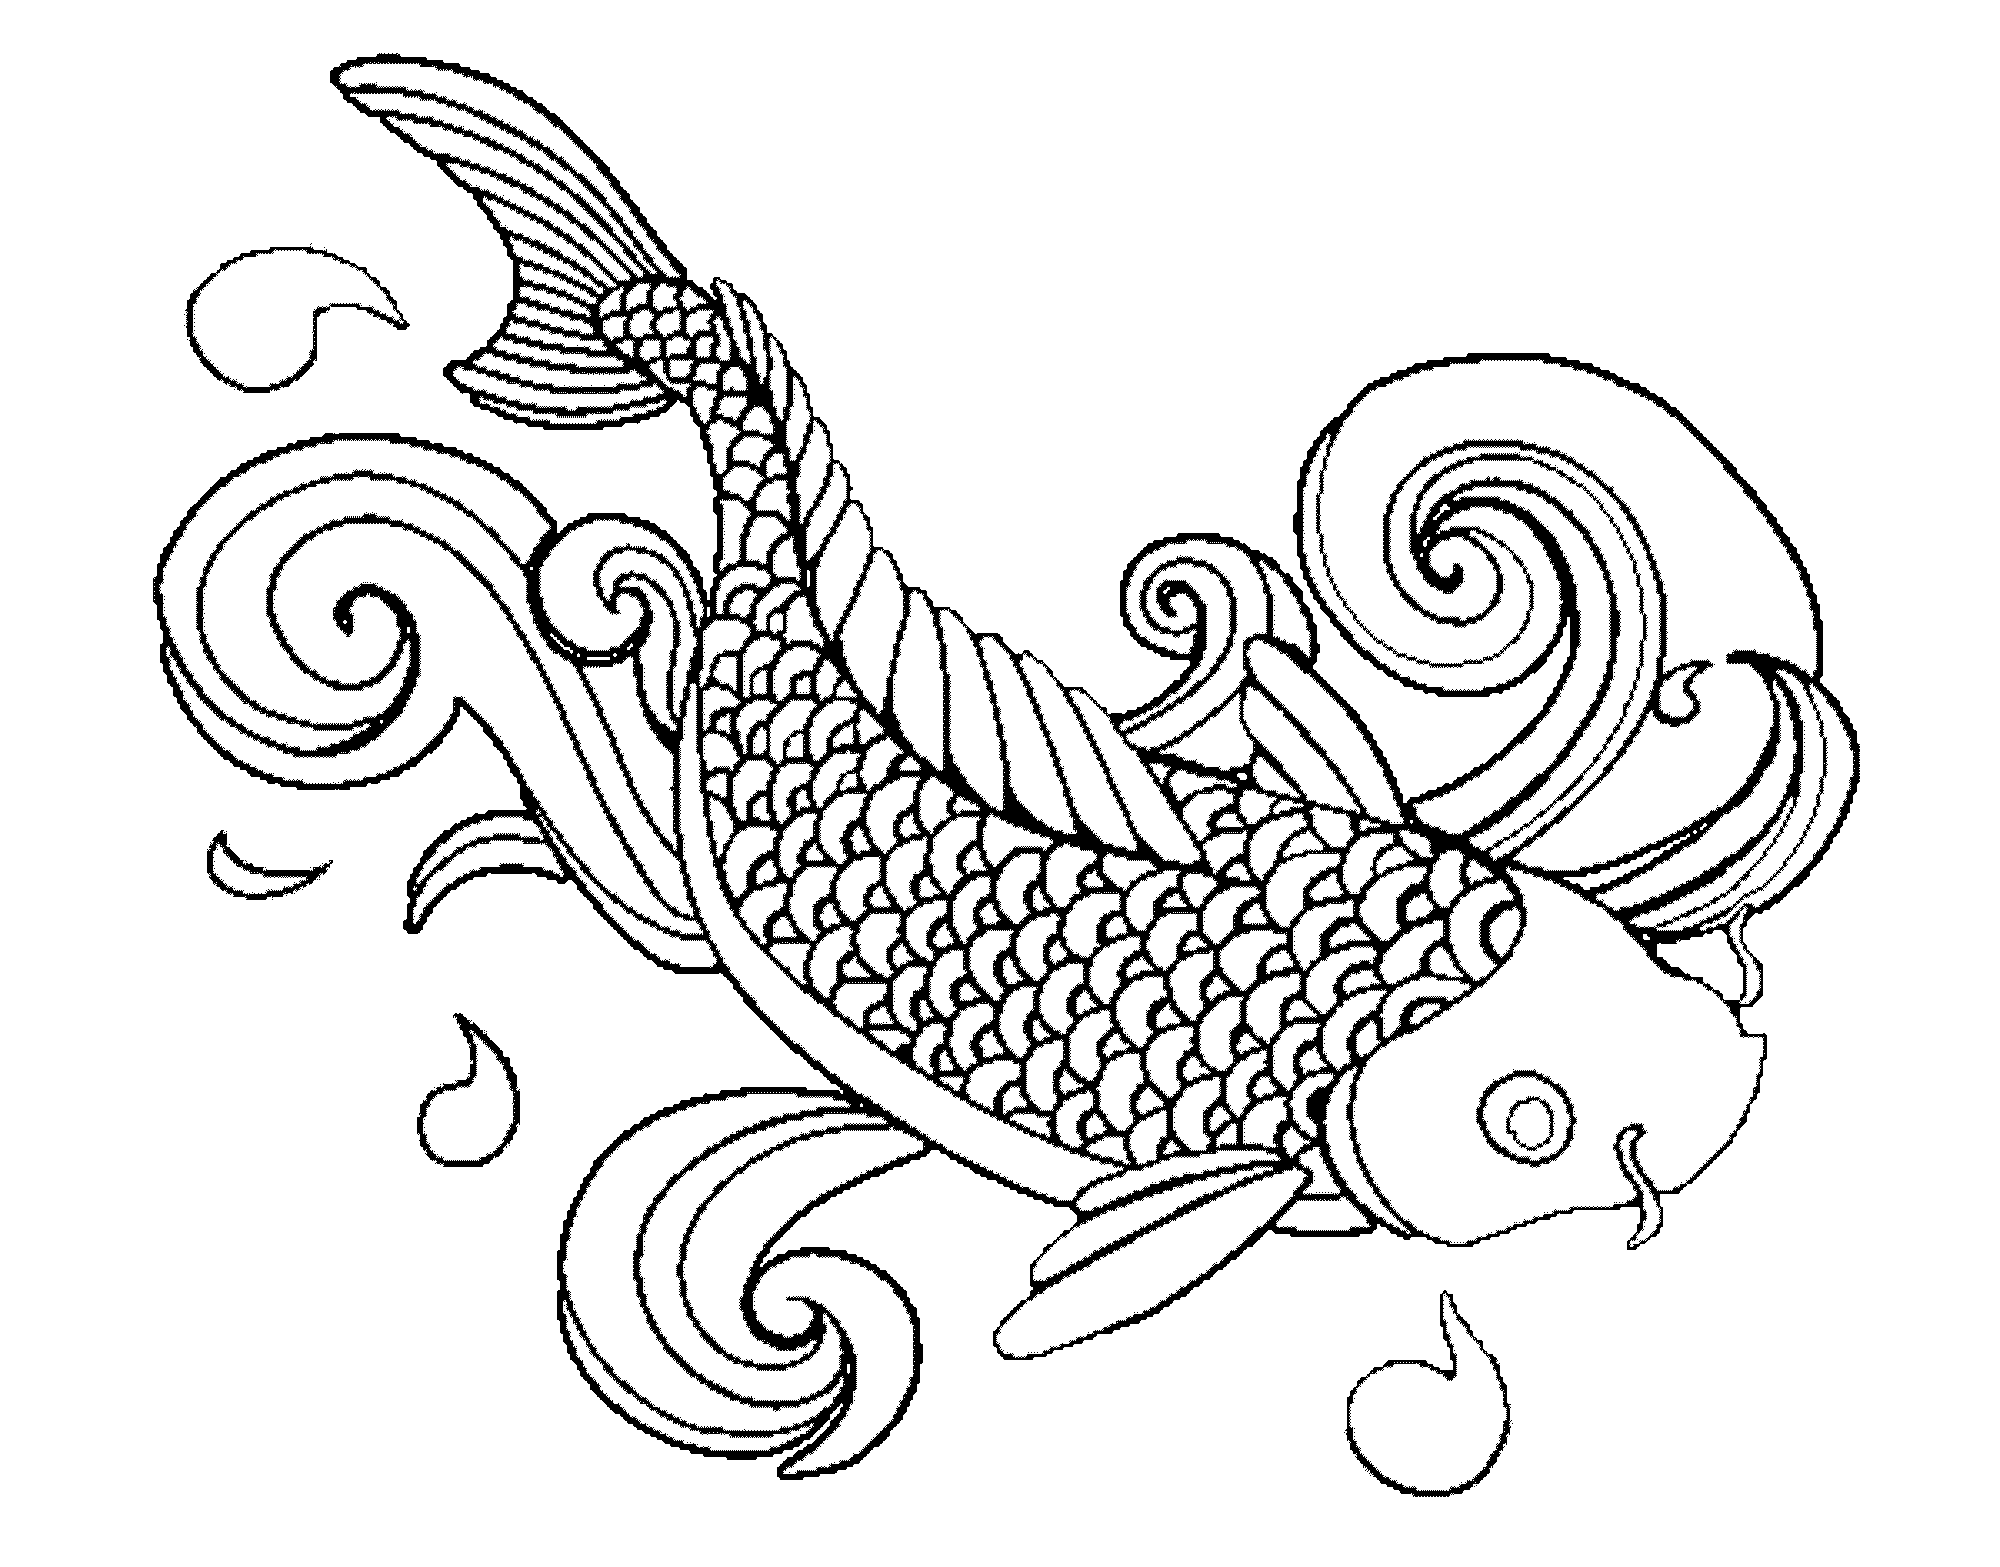 Coloring Page Fish Printable Kids Colouring Pages Fish Coloring Page Online Coloring Pages Animal Coloring Pages